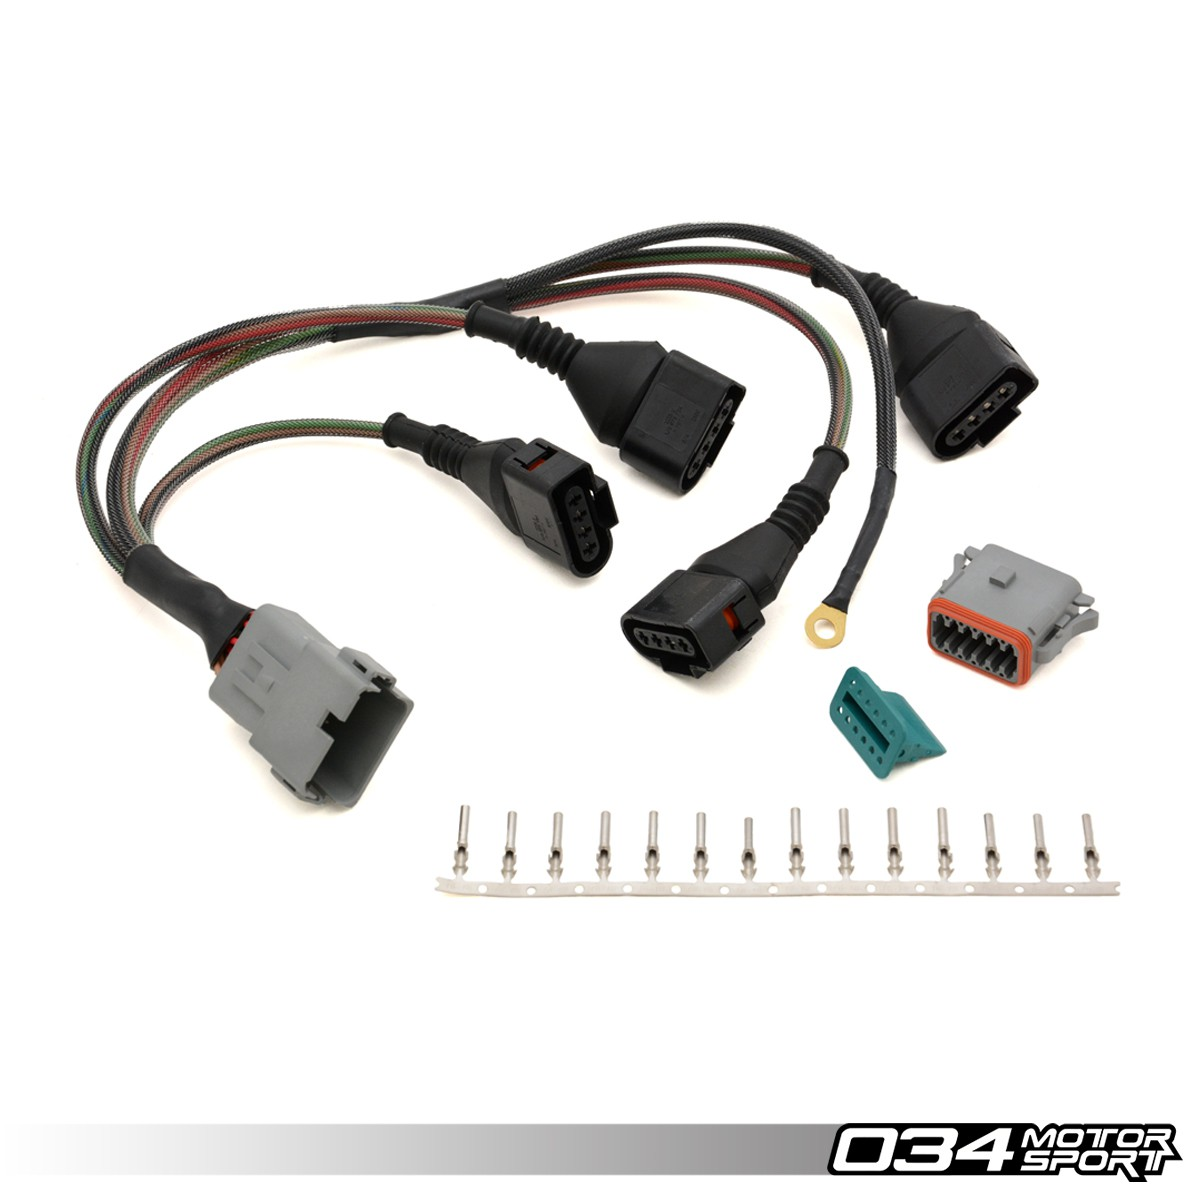 repair update harness audi volkswagen 18t with 4 wire coils 034motorsport 034 701 0004 2 repair update harness, audi volkswagen 1 8t with 4 wire coils coil pack wiring harness at honlapkeszites.co